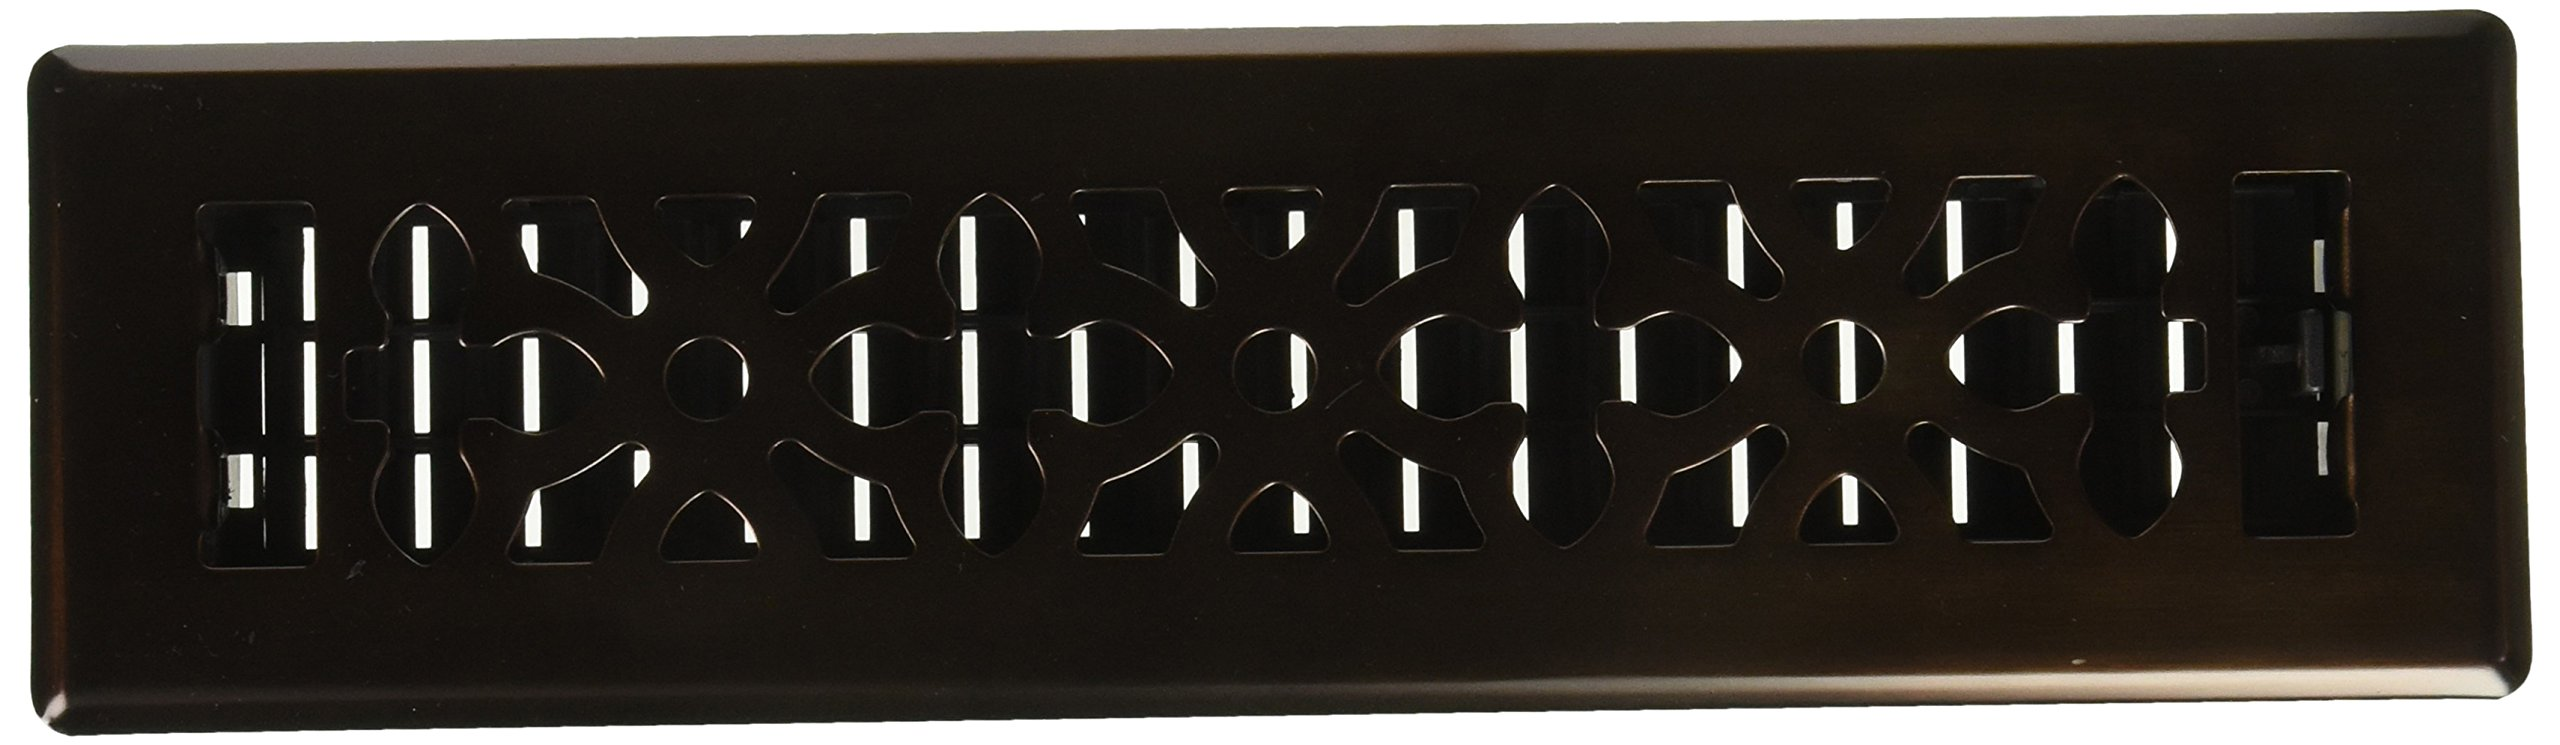 Decor Grates AGH212-RB 2-Inch by 12-Inch Gothic Bronze Steel Floor Register